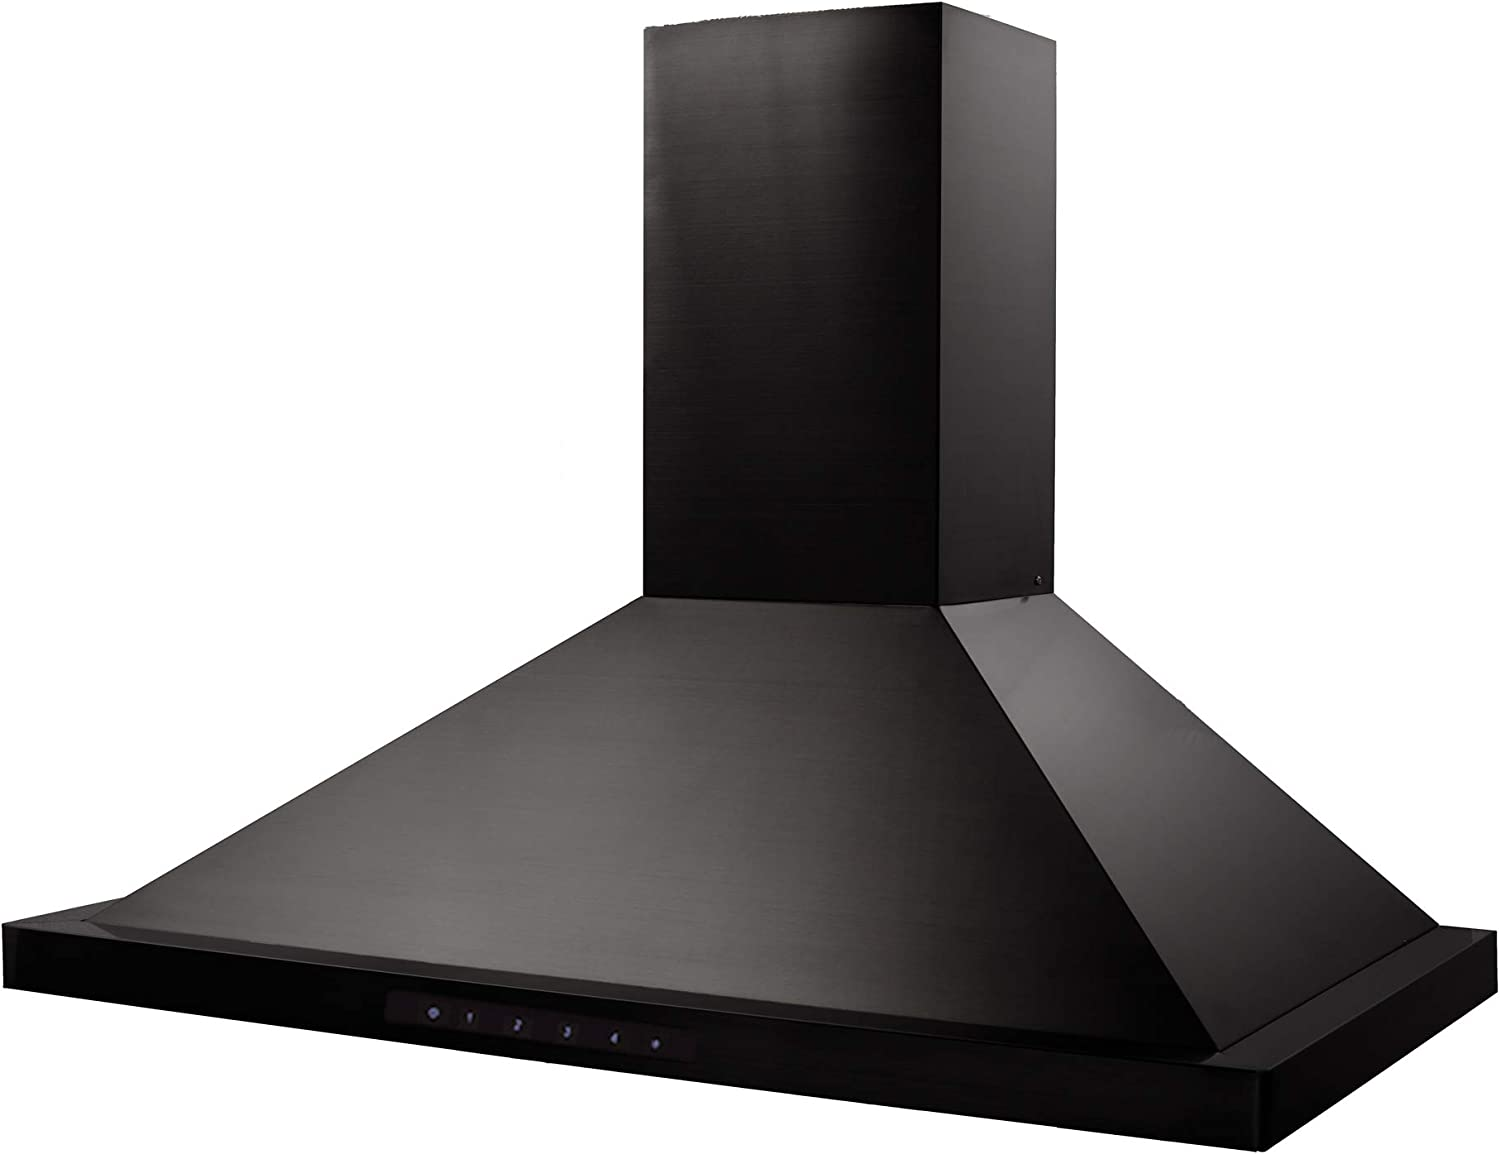 ZLINE 30 in. Wall Mount Range Hood in Black Stainless Steel (BSKBN-30)